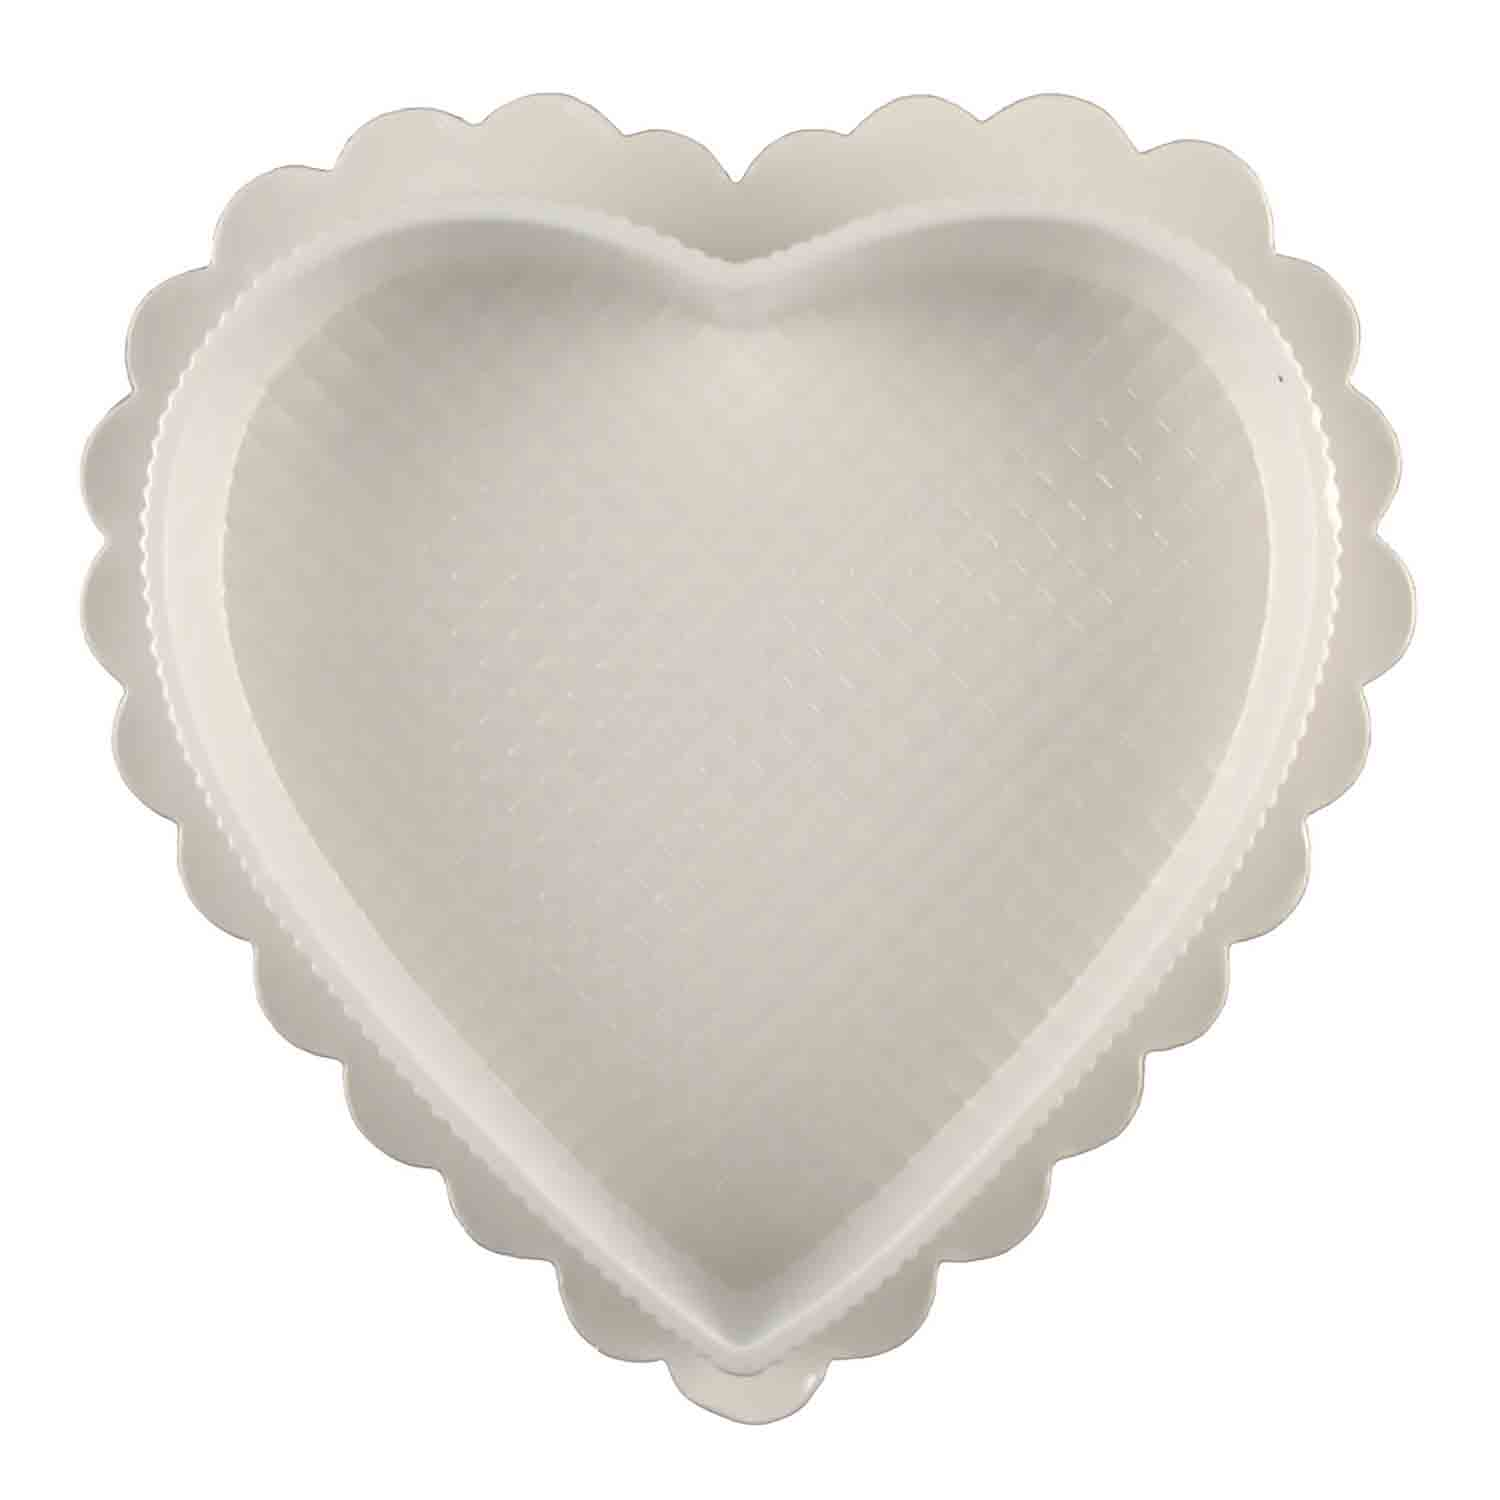 1/2 lb White Heart Candy Box with Clear Lid